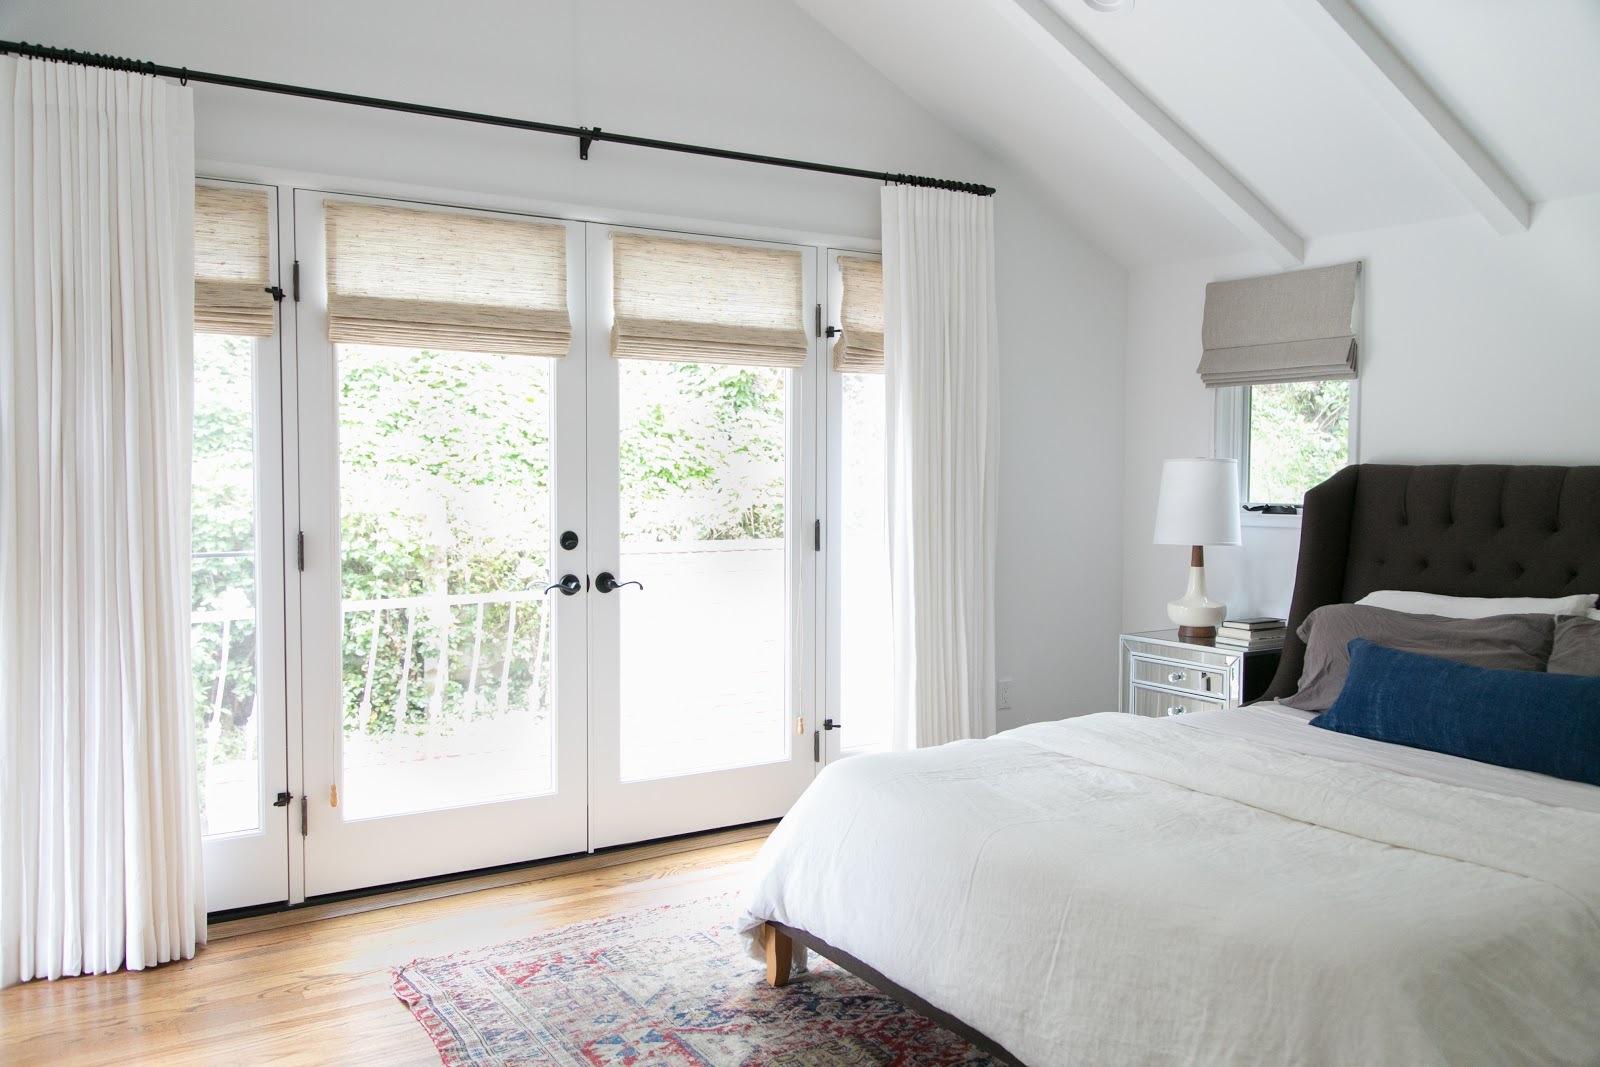 A bedroom with white drapes opening to a balcony door | Everhem